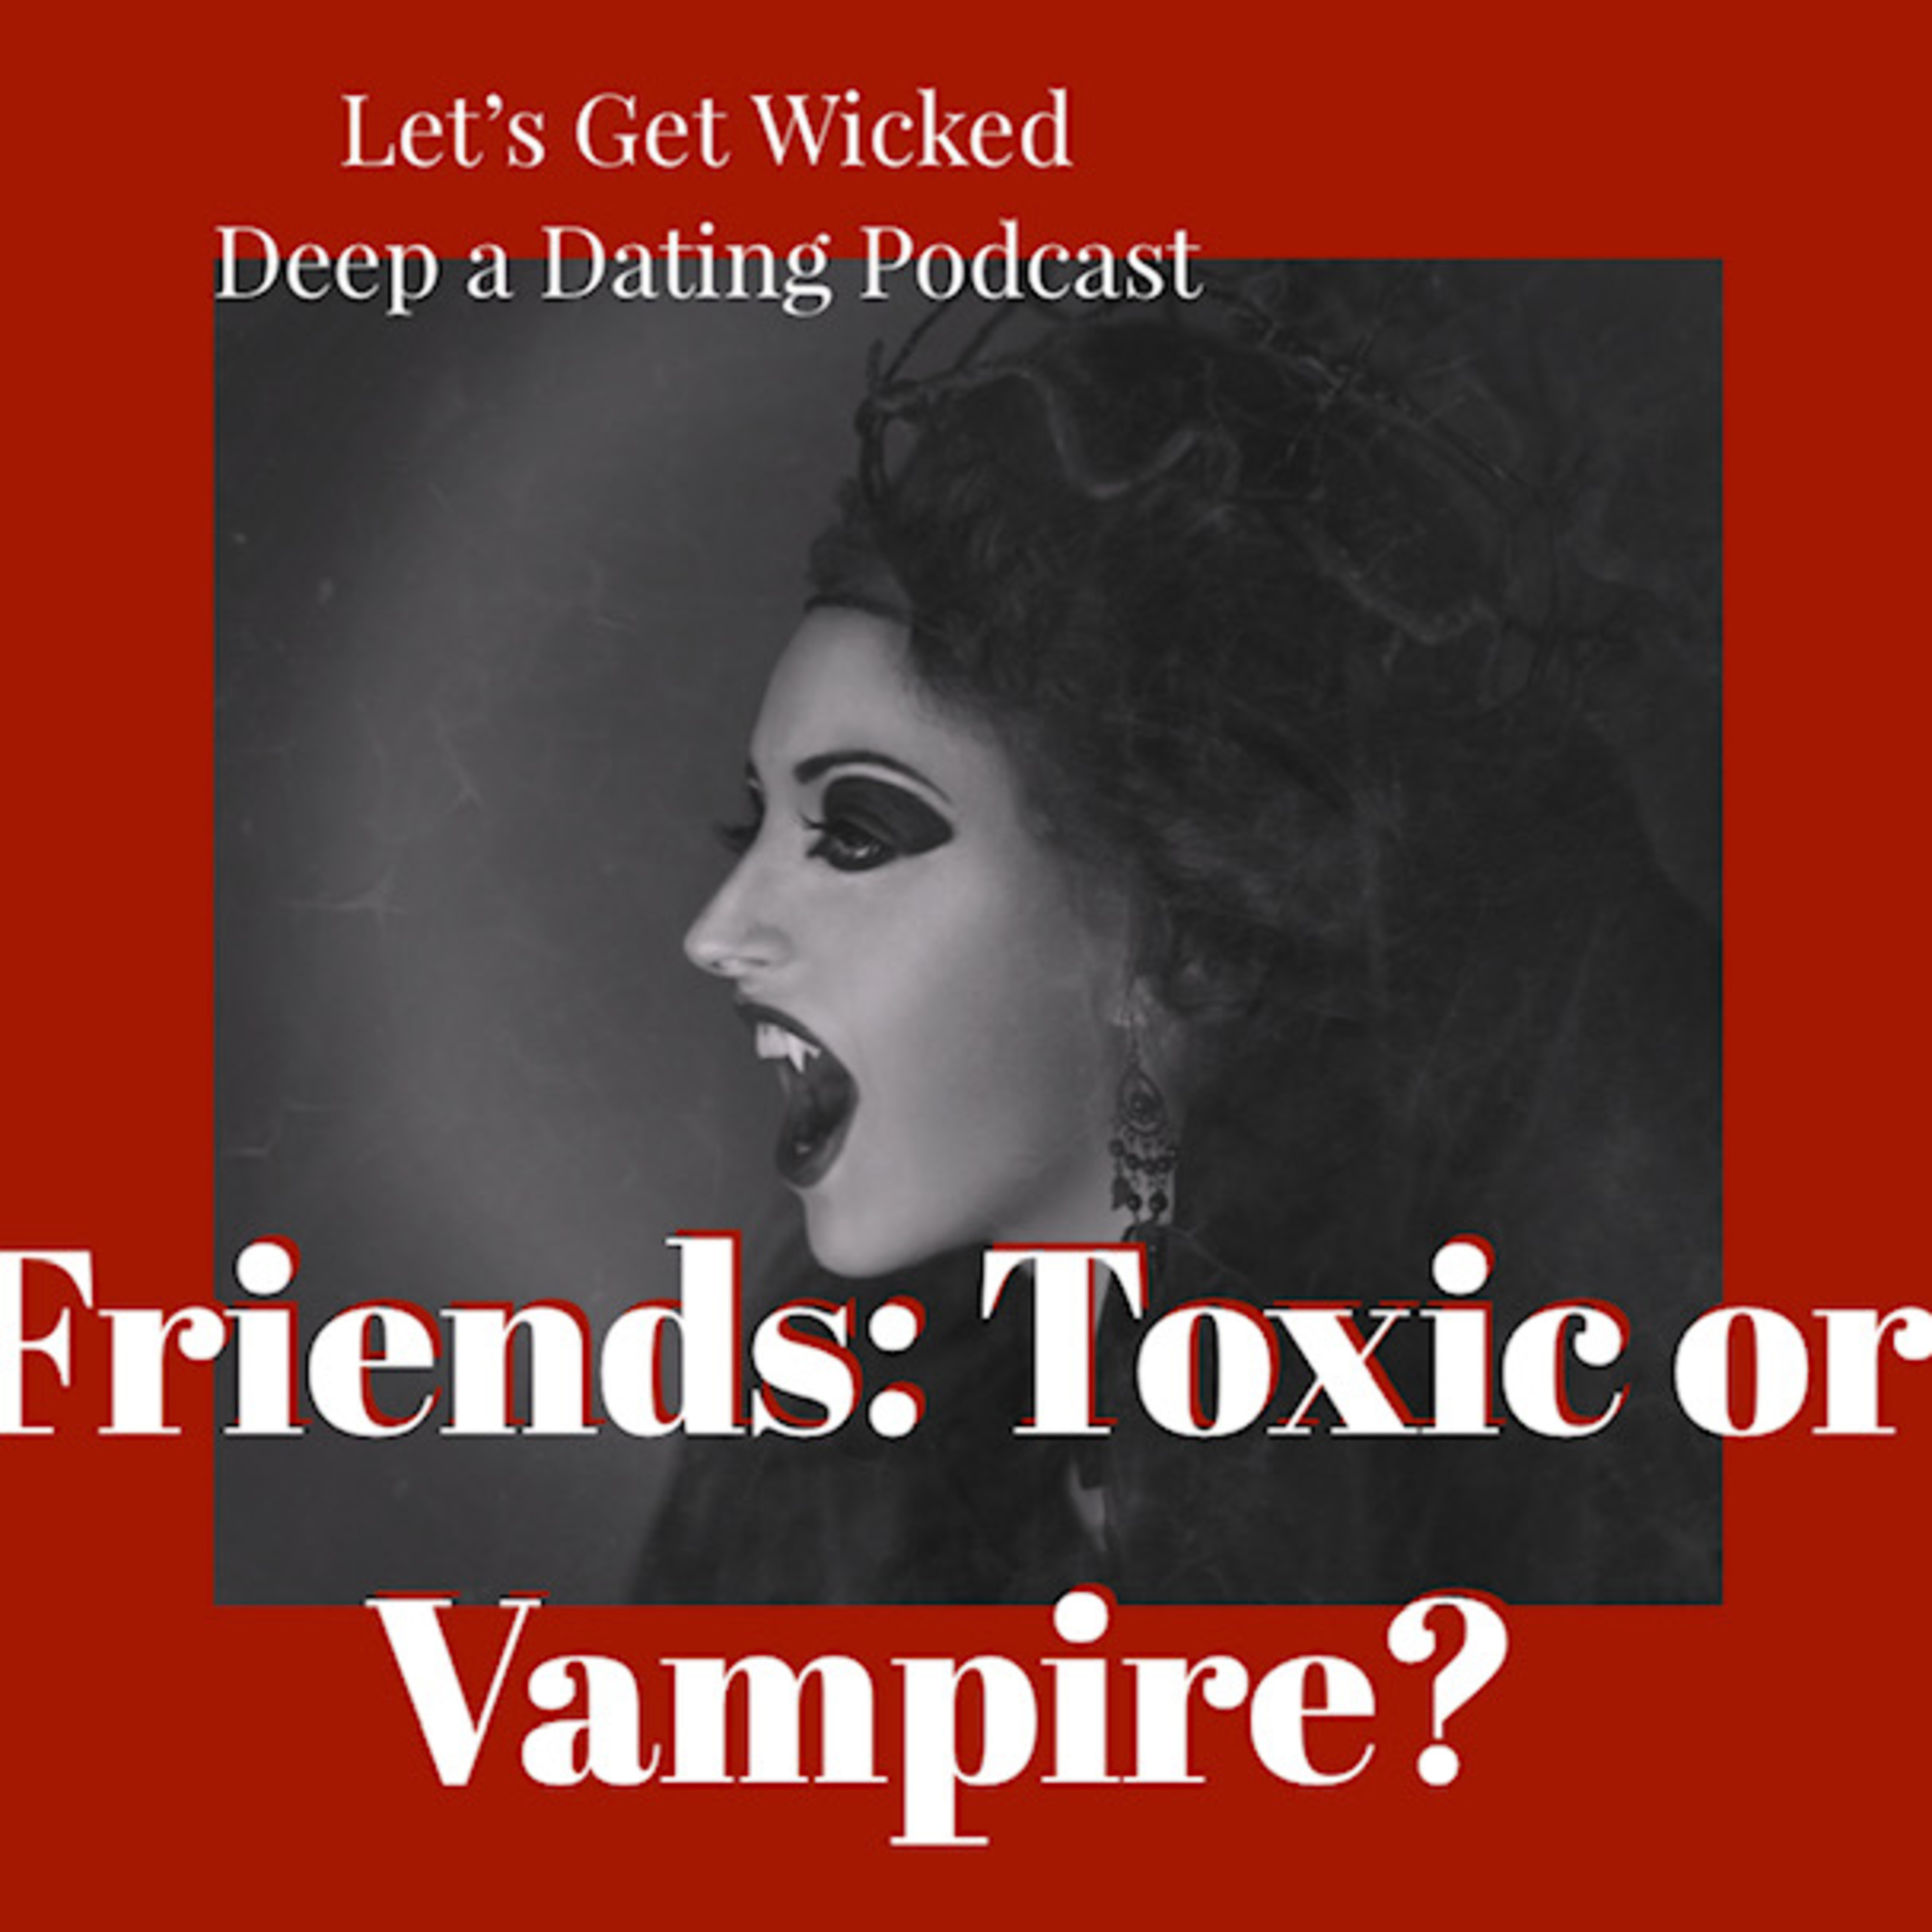 Friends: Toxic or Vampire?